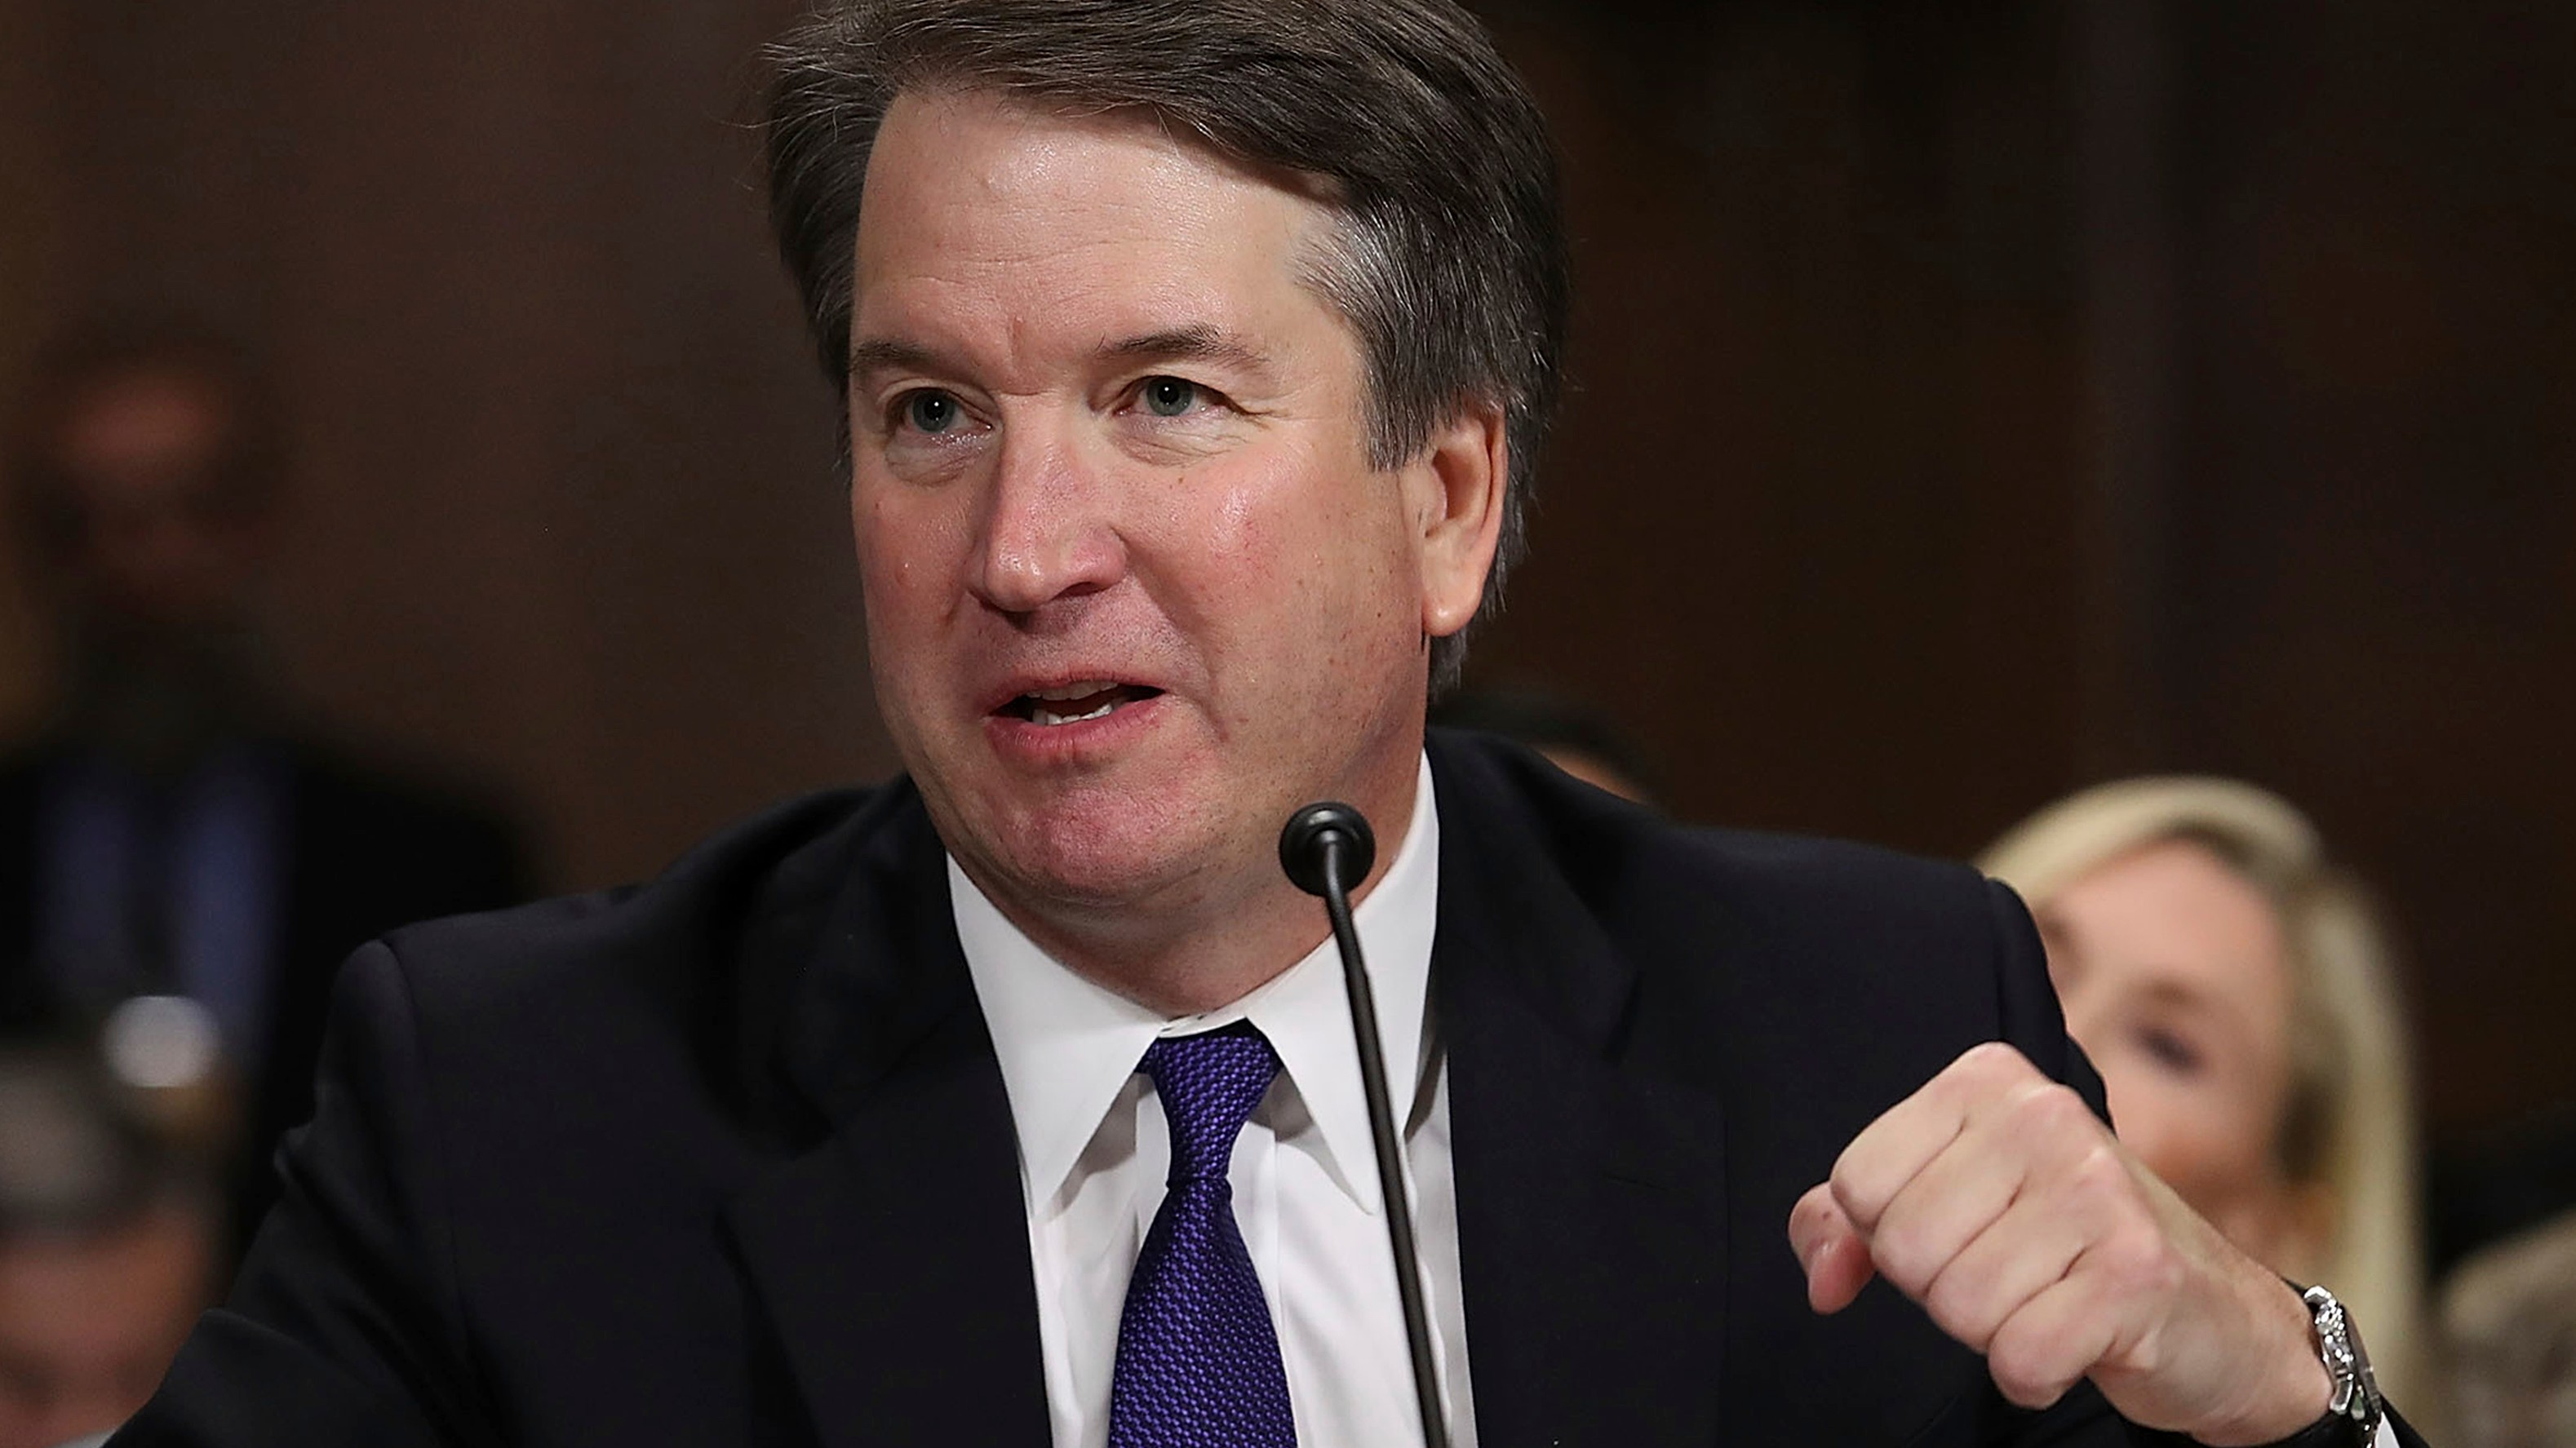 The FBI didn't look into whether Kavanaugh lied under oath about blacking out, report says